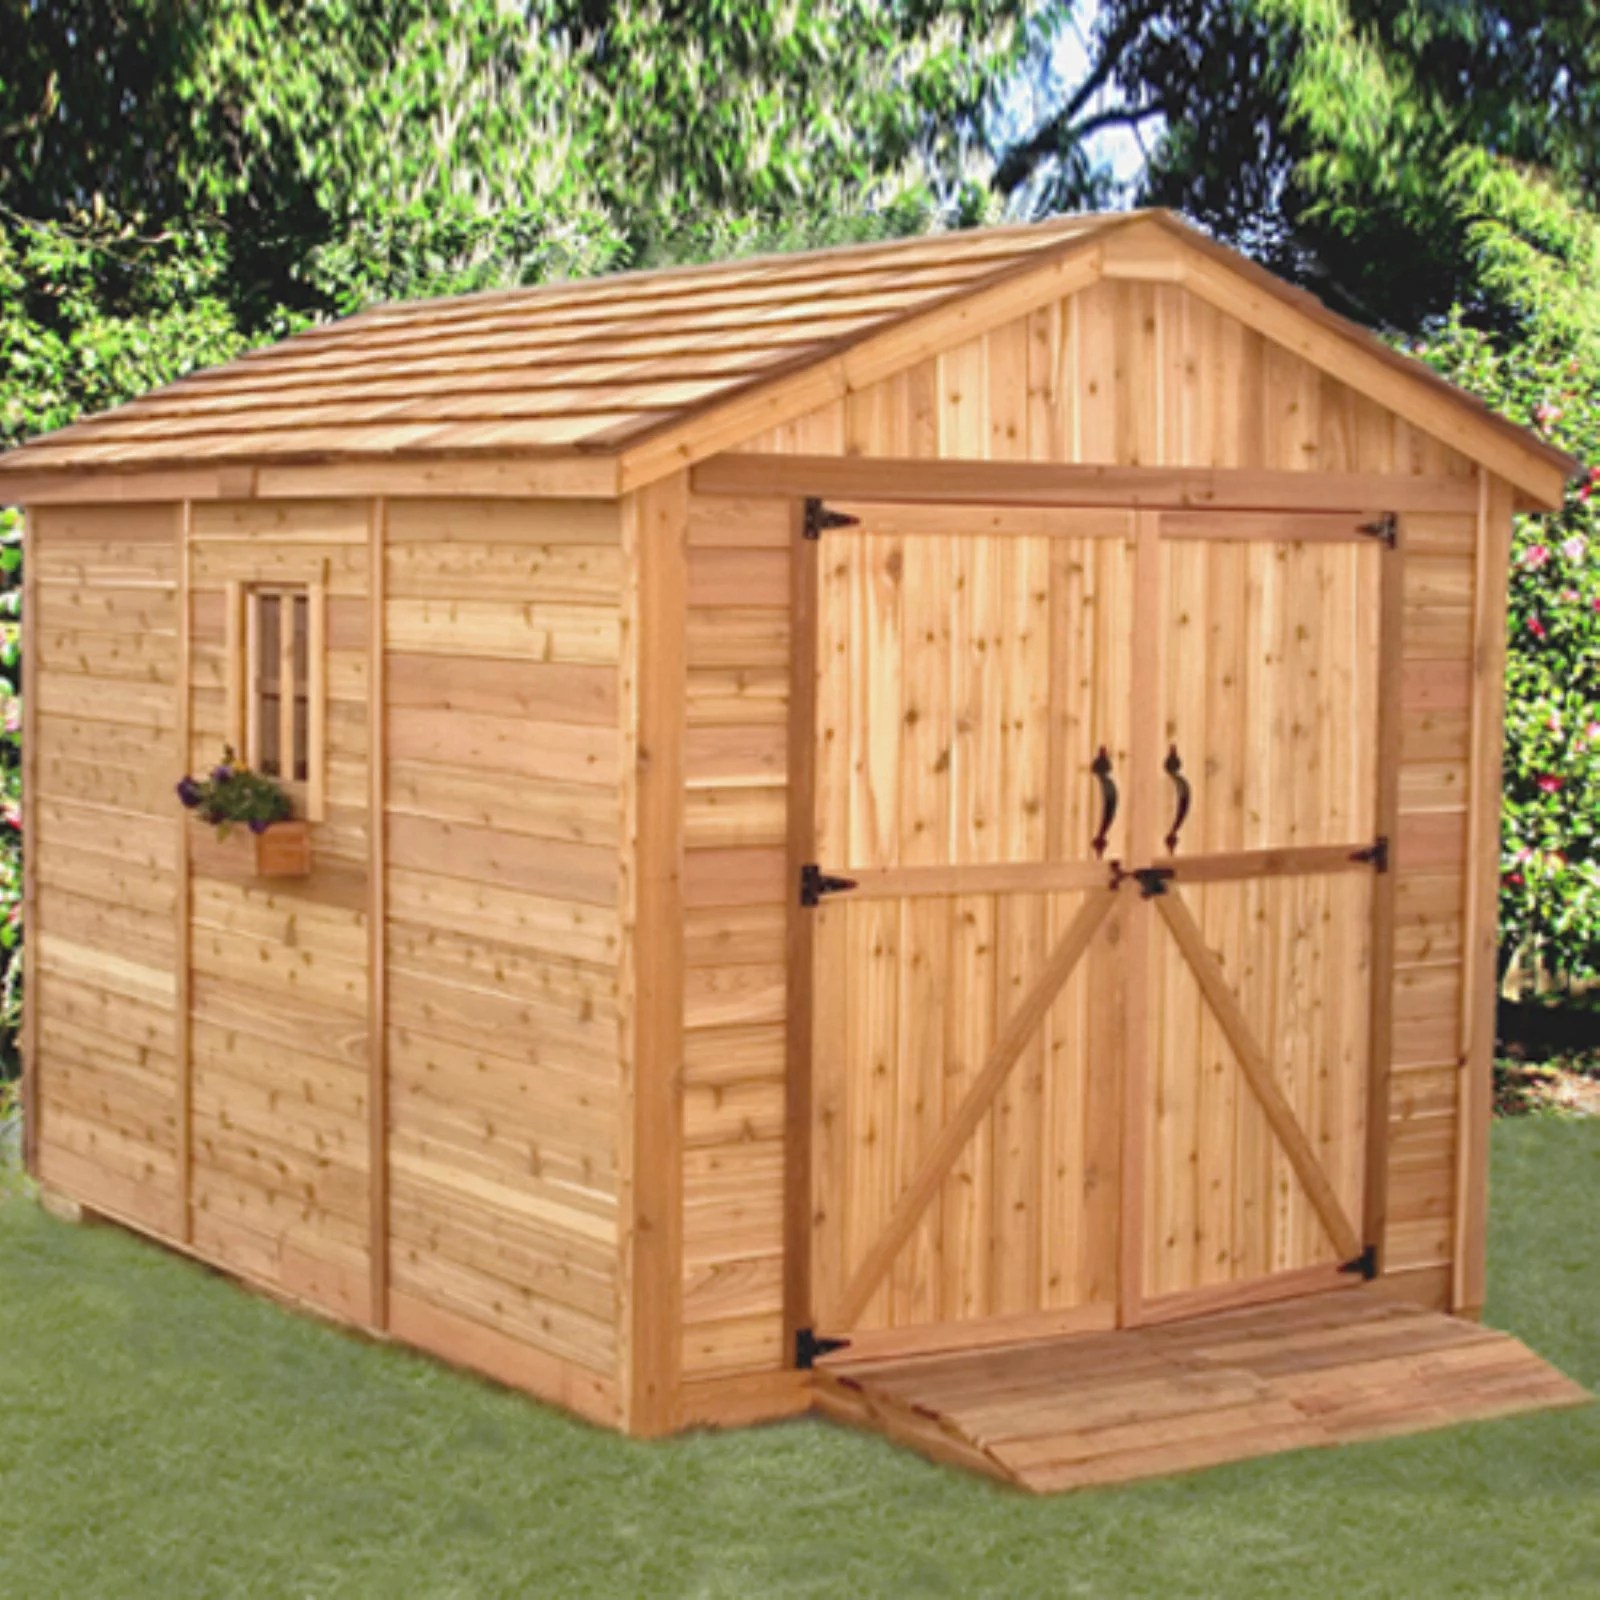 Outdoor Living Today SM812 SpaceMaker 8 x 12 ft. Storage ... on Cc Outdoor Living id=12280